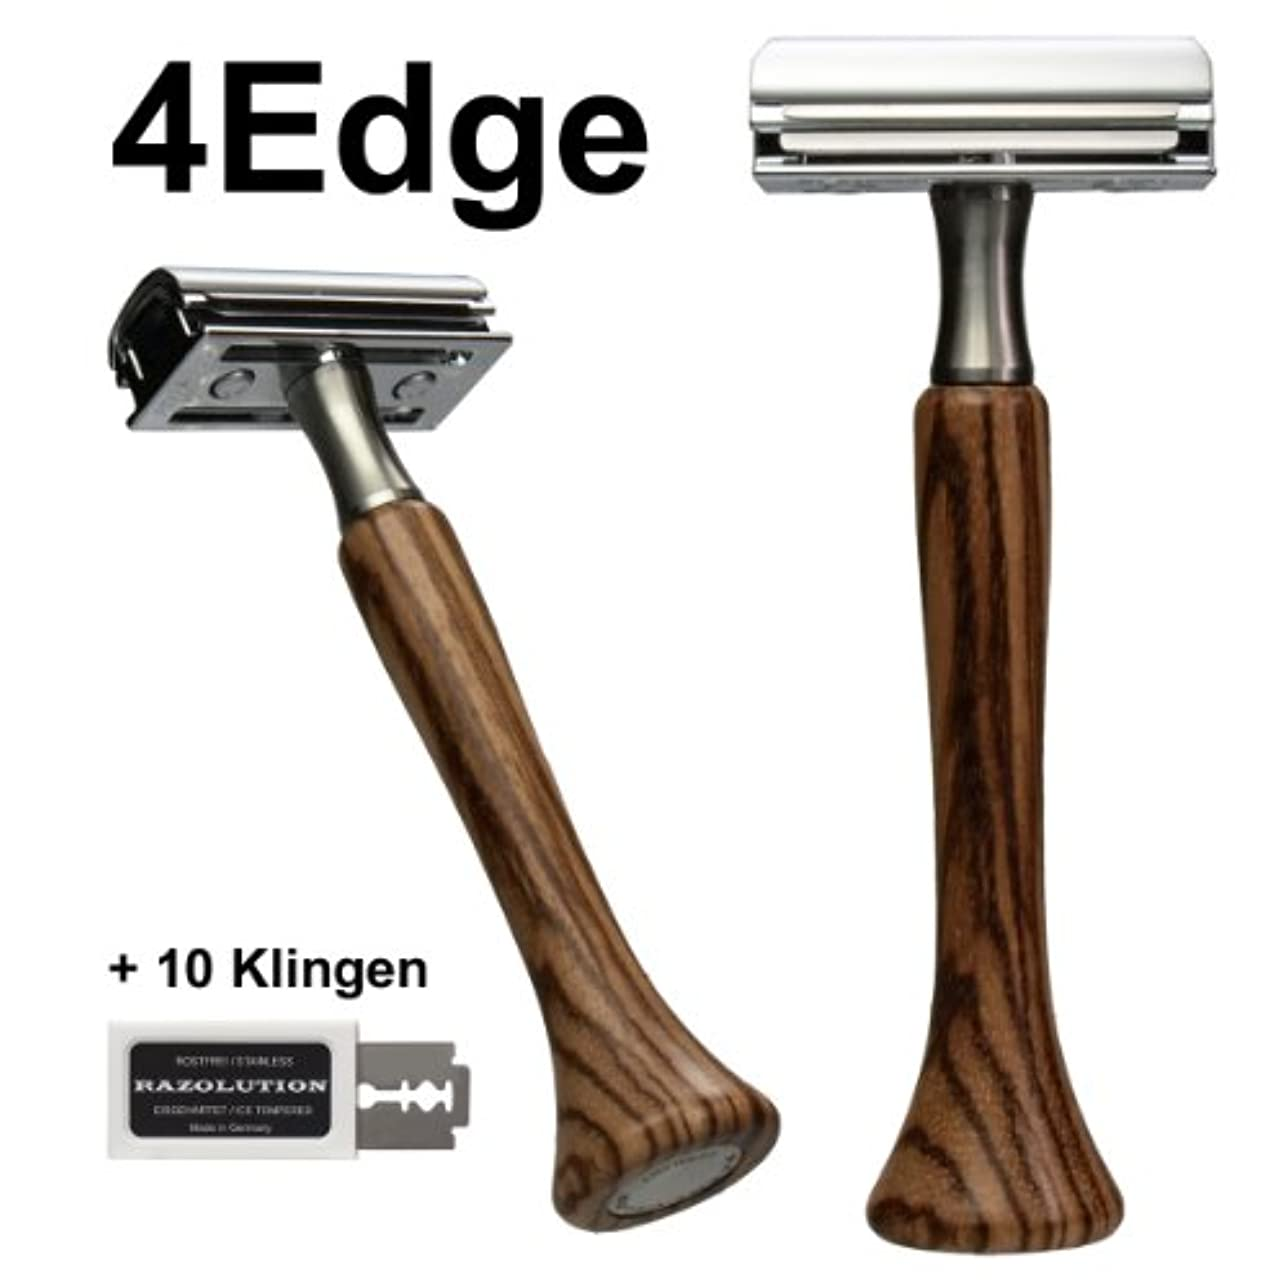 眠いです郊外インターネットRAZOLUTION 4Edge Safety razor, Zebrano handle